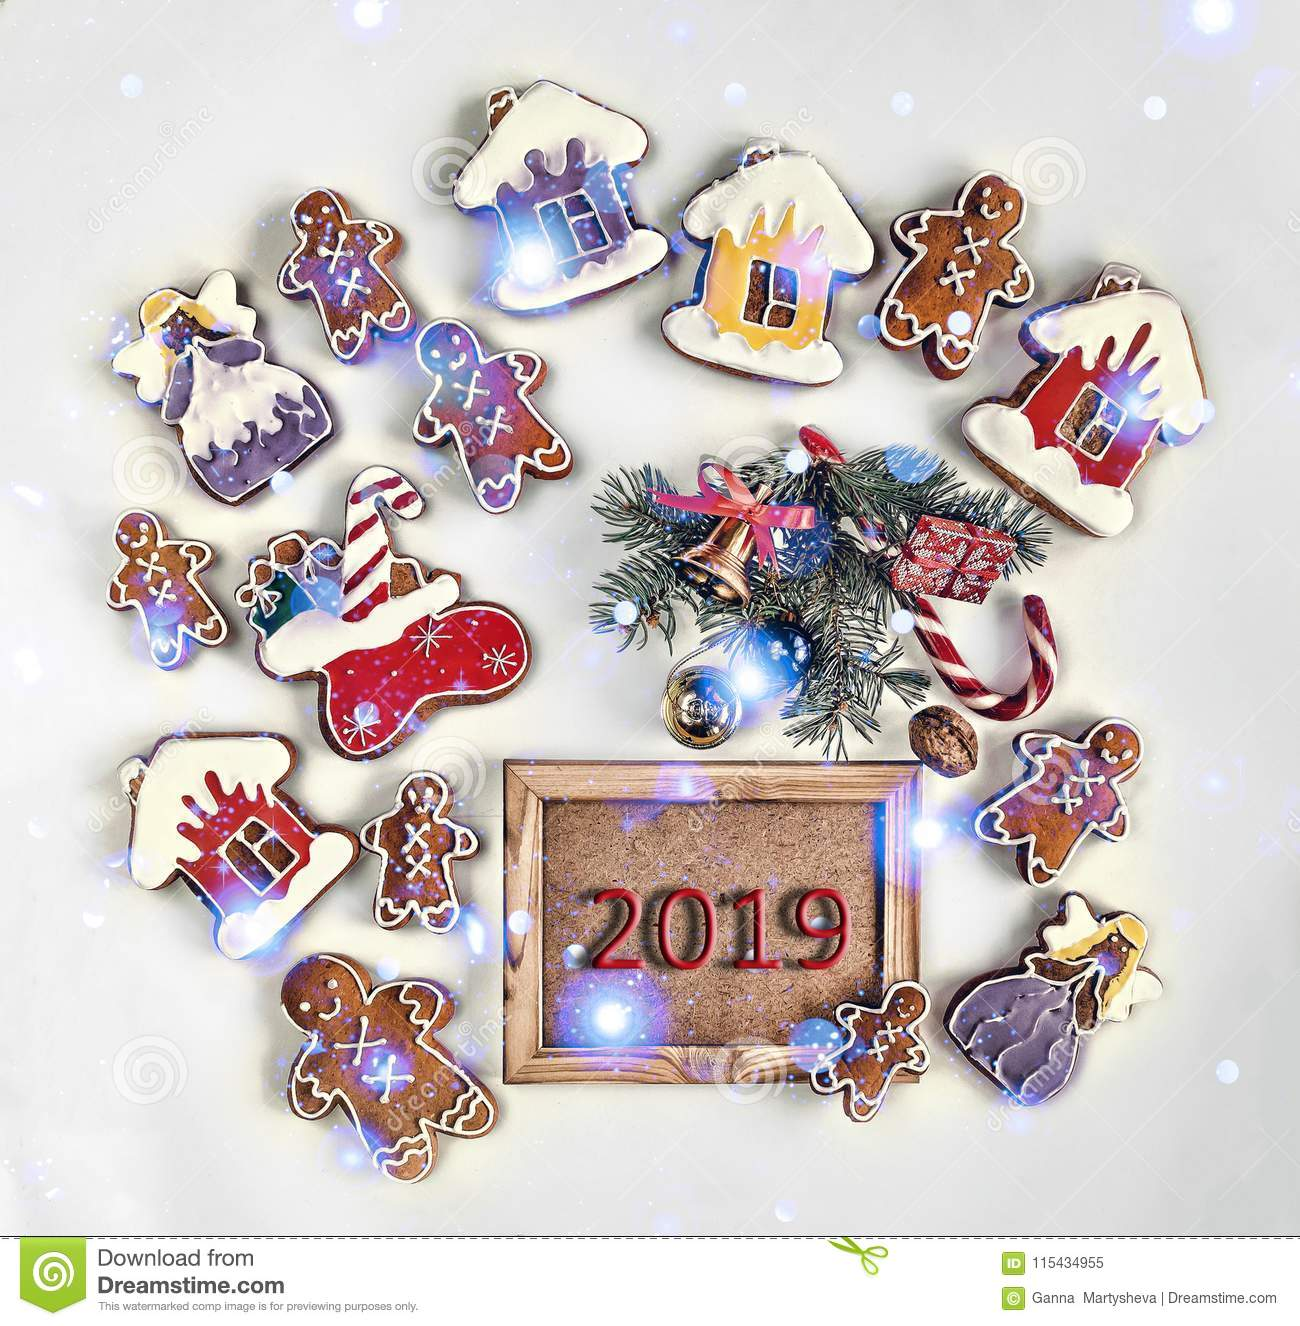 2019 Christmas Cookies 2019, Christmas Baking Food Holiday Cookies Background Xma Stock